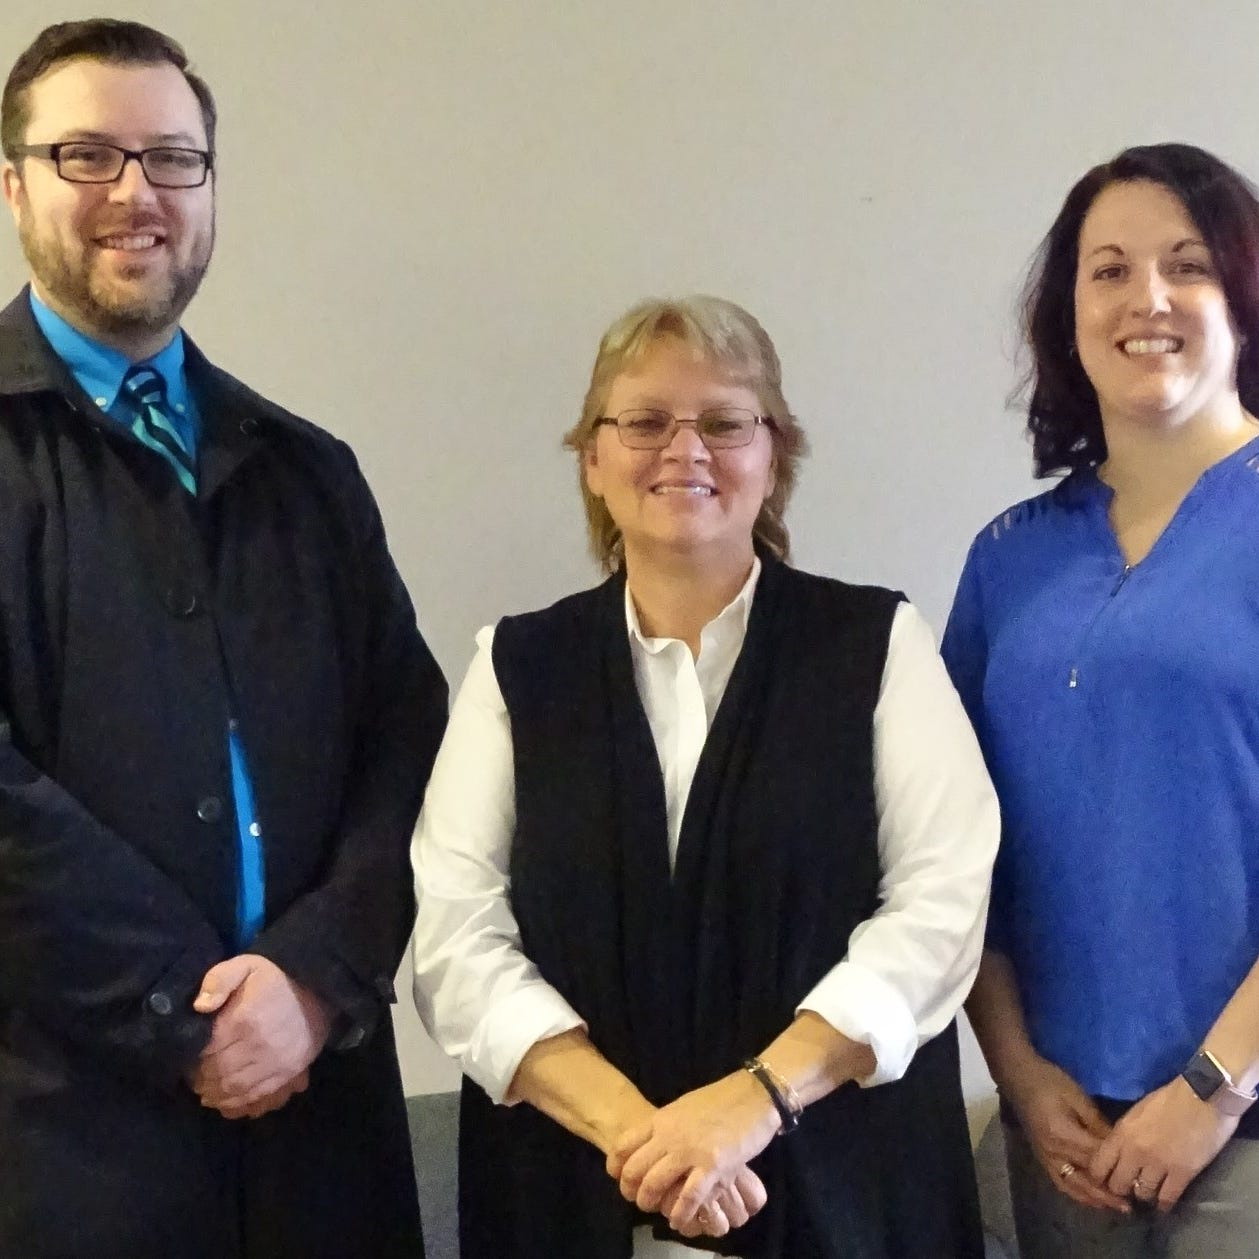 New clinic in Bucyrus will provide primary health care, regardless of ability to pay